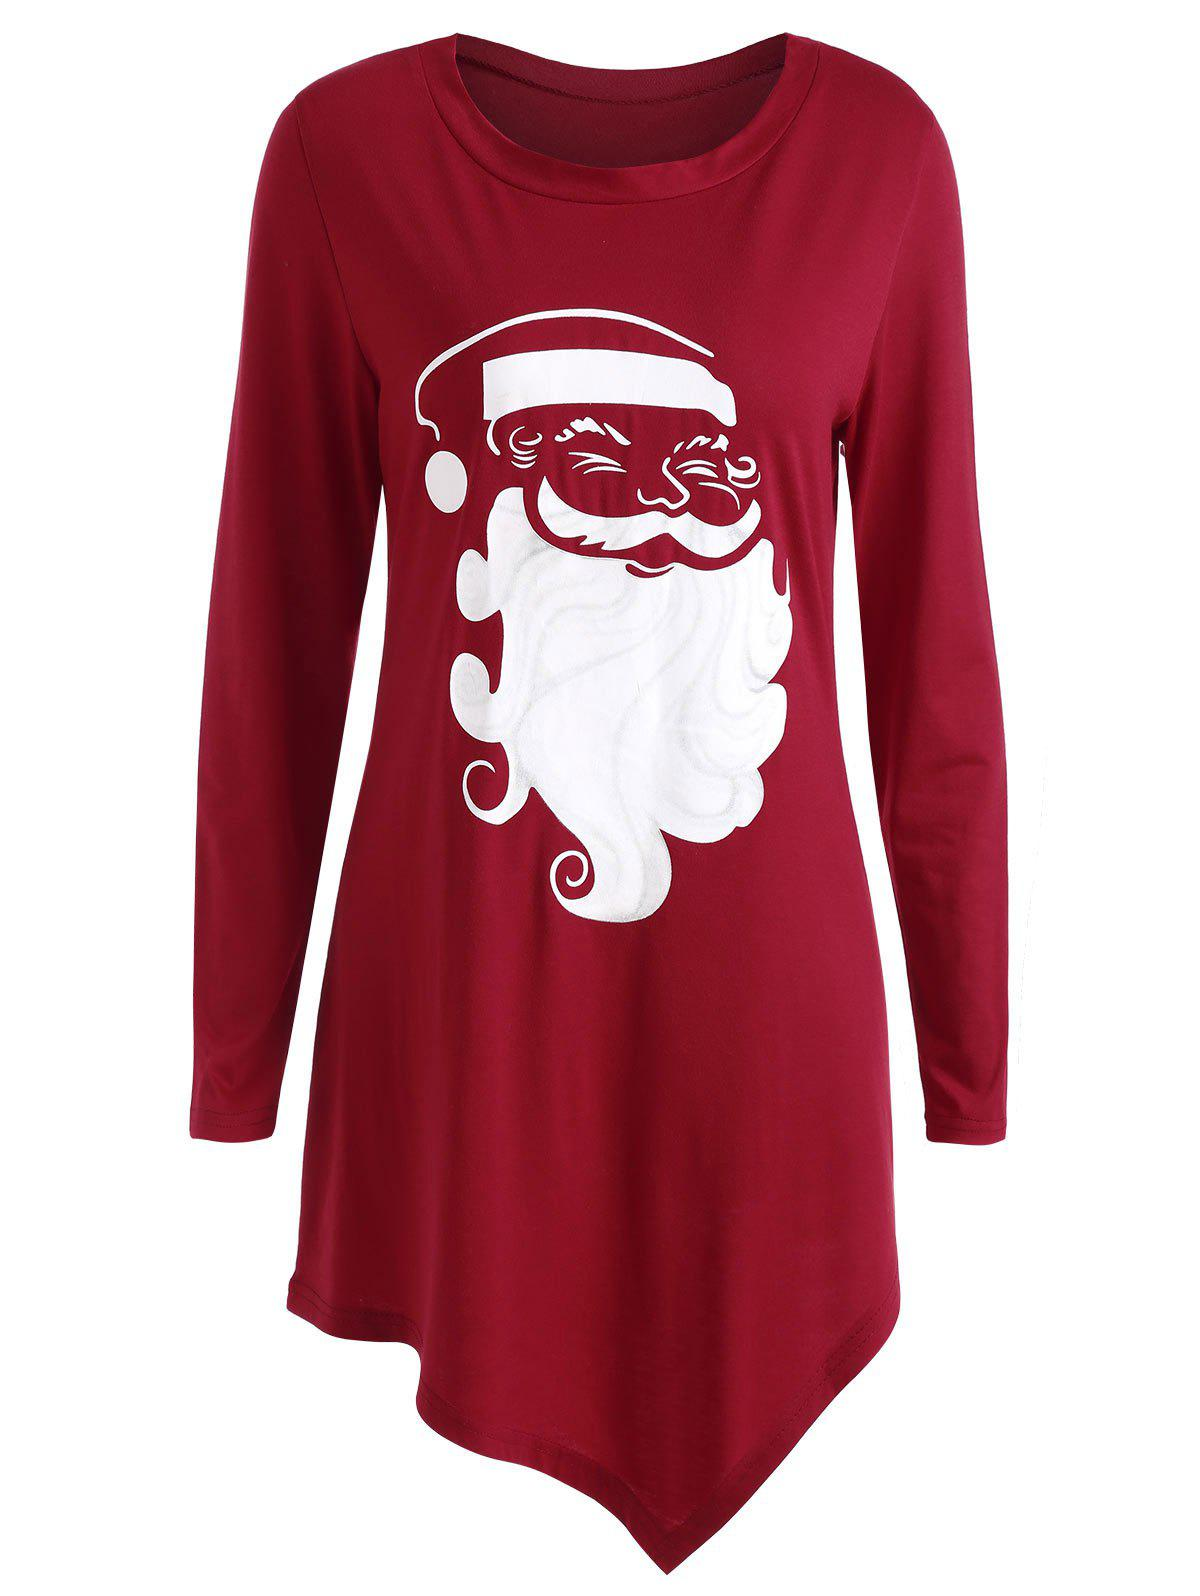 05655a234 2019 Plus Size Christmas Santa Claus T-shirt | Rosegal.com